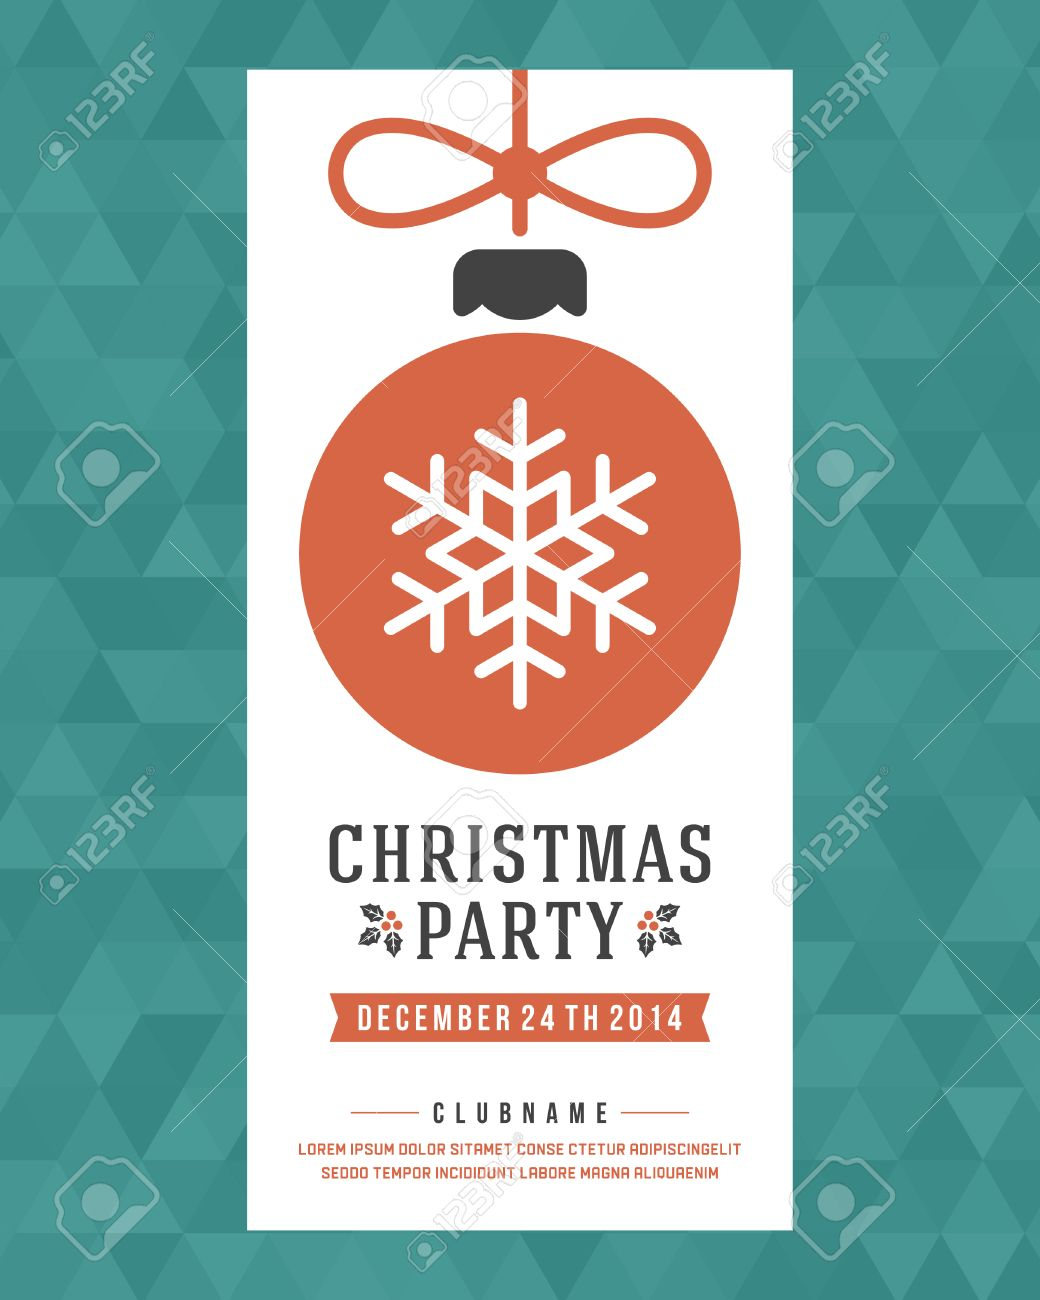 christmas party invitation retro typography and ornament decoration